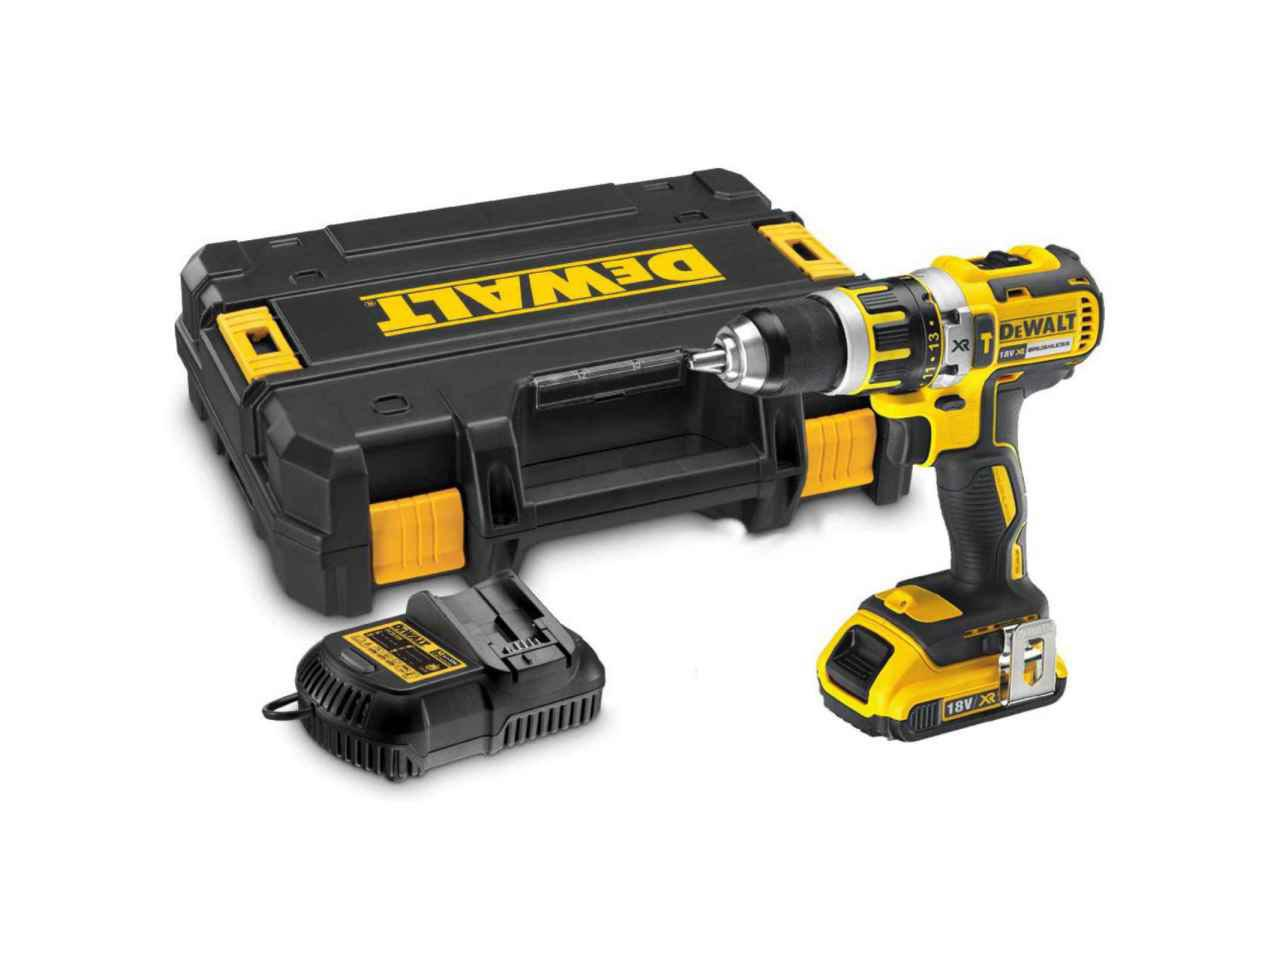 dewalt dcd795d2 compact combi hammer drill driver 18v 2 x. Black Bedroom Furniture Sets. Home Design Ideas